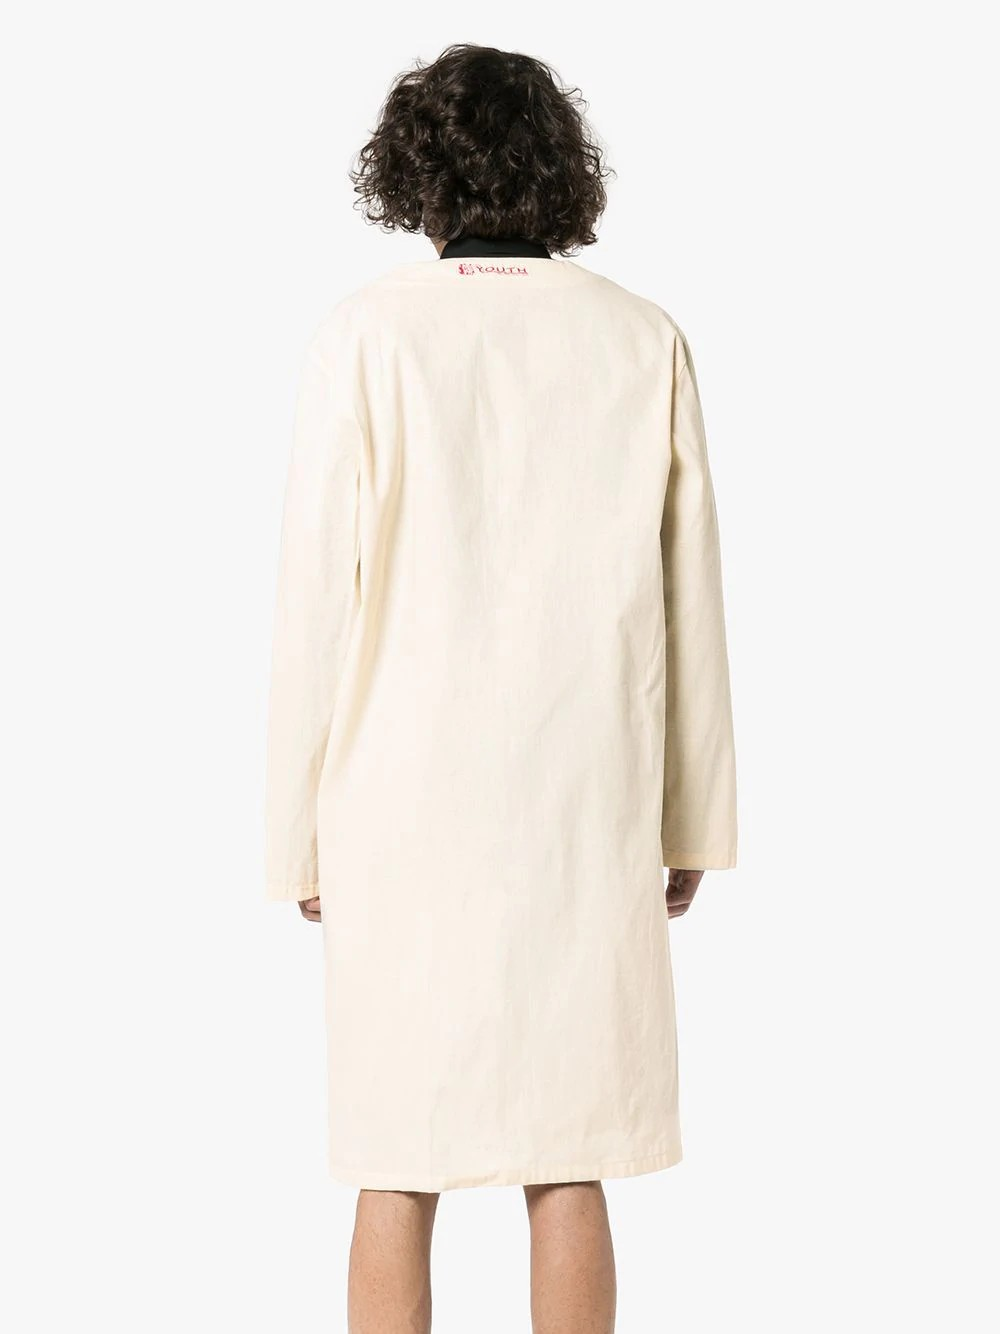 Classic labo coat with 2 label